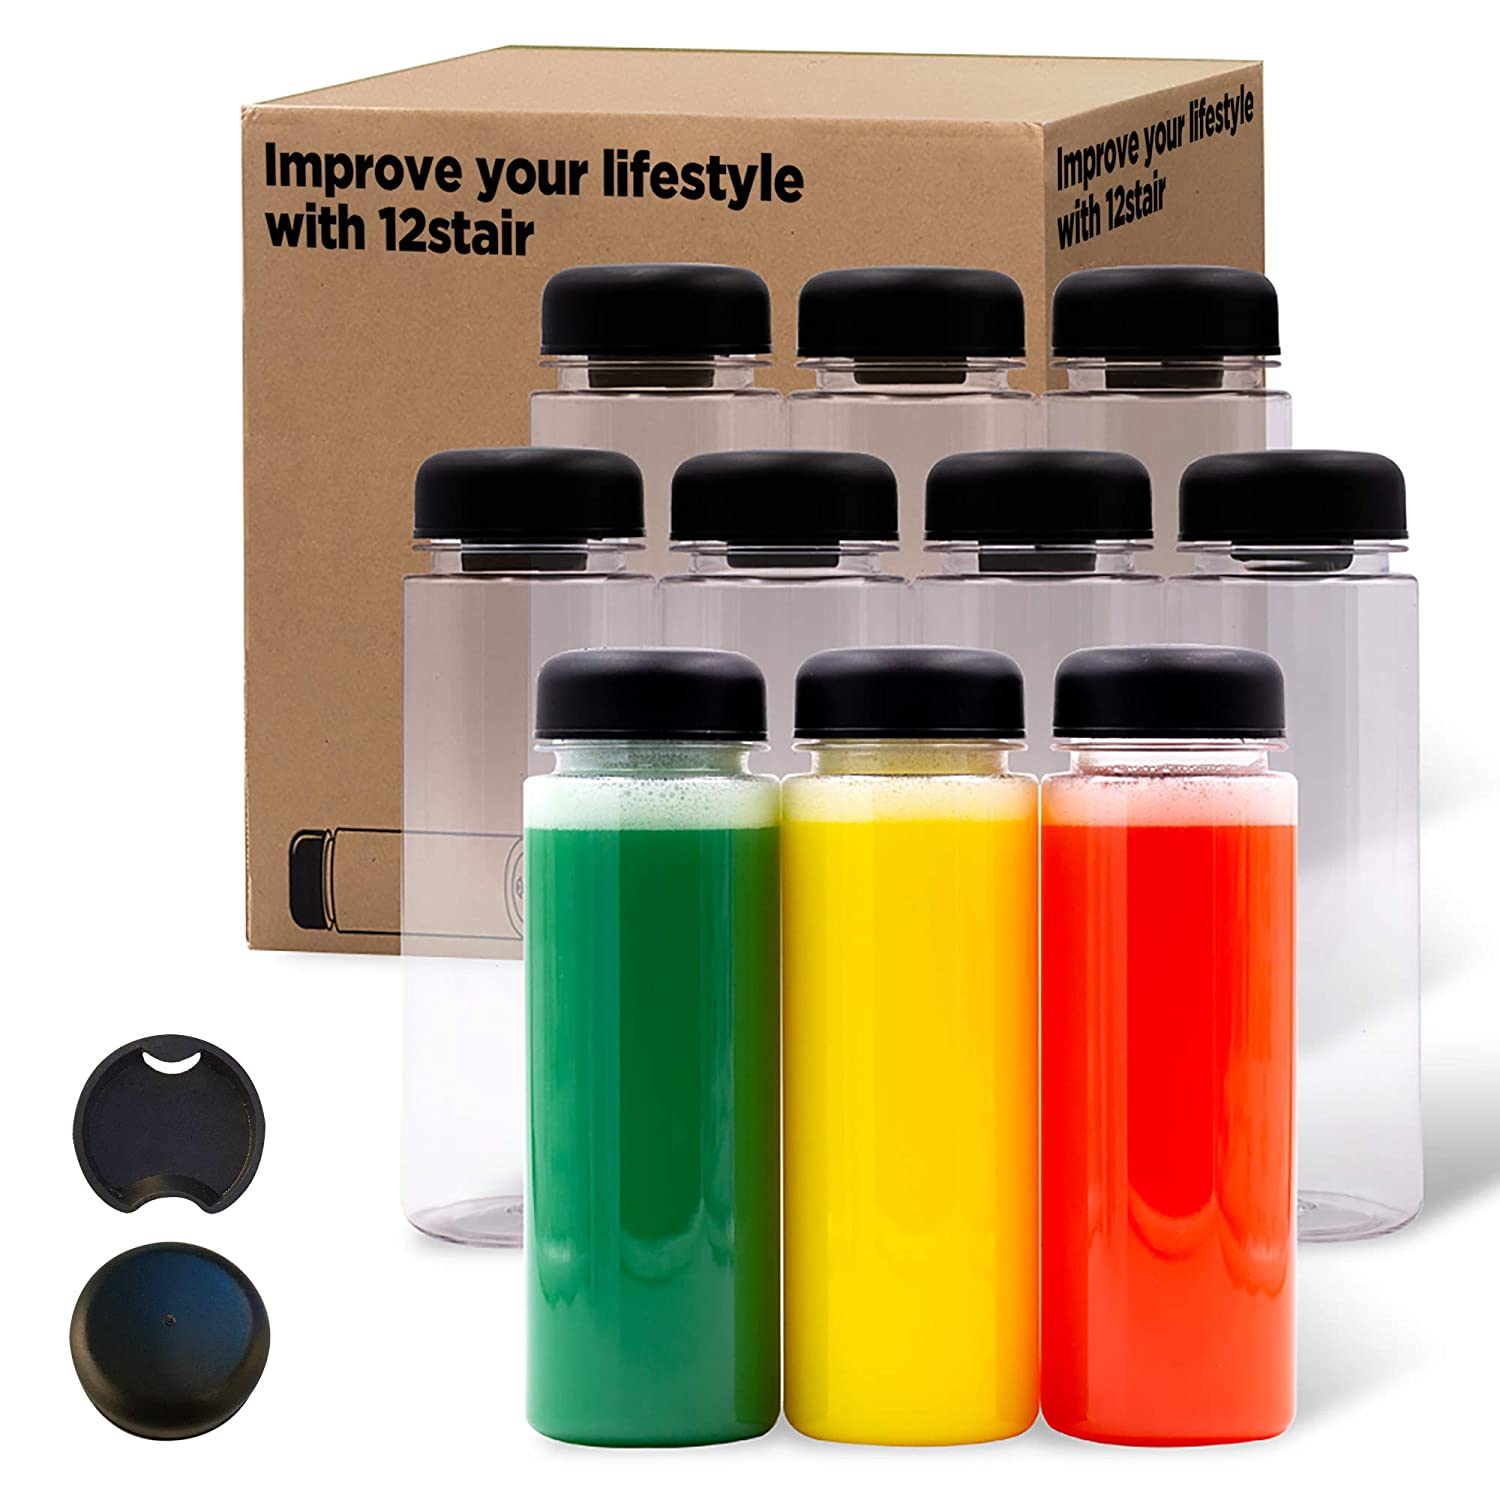 12 STAIR -10pack 16oz plastic bottles with caps juice bottles for juicing reusable juice bottles, plastic smoothie jars with lids, other beverages Bottles drink container with lids dishwasher safe Grade BPA Free